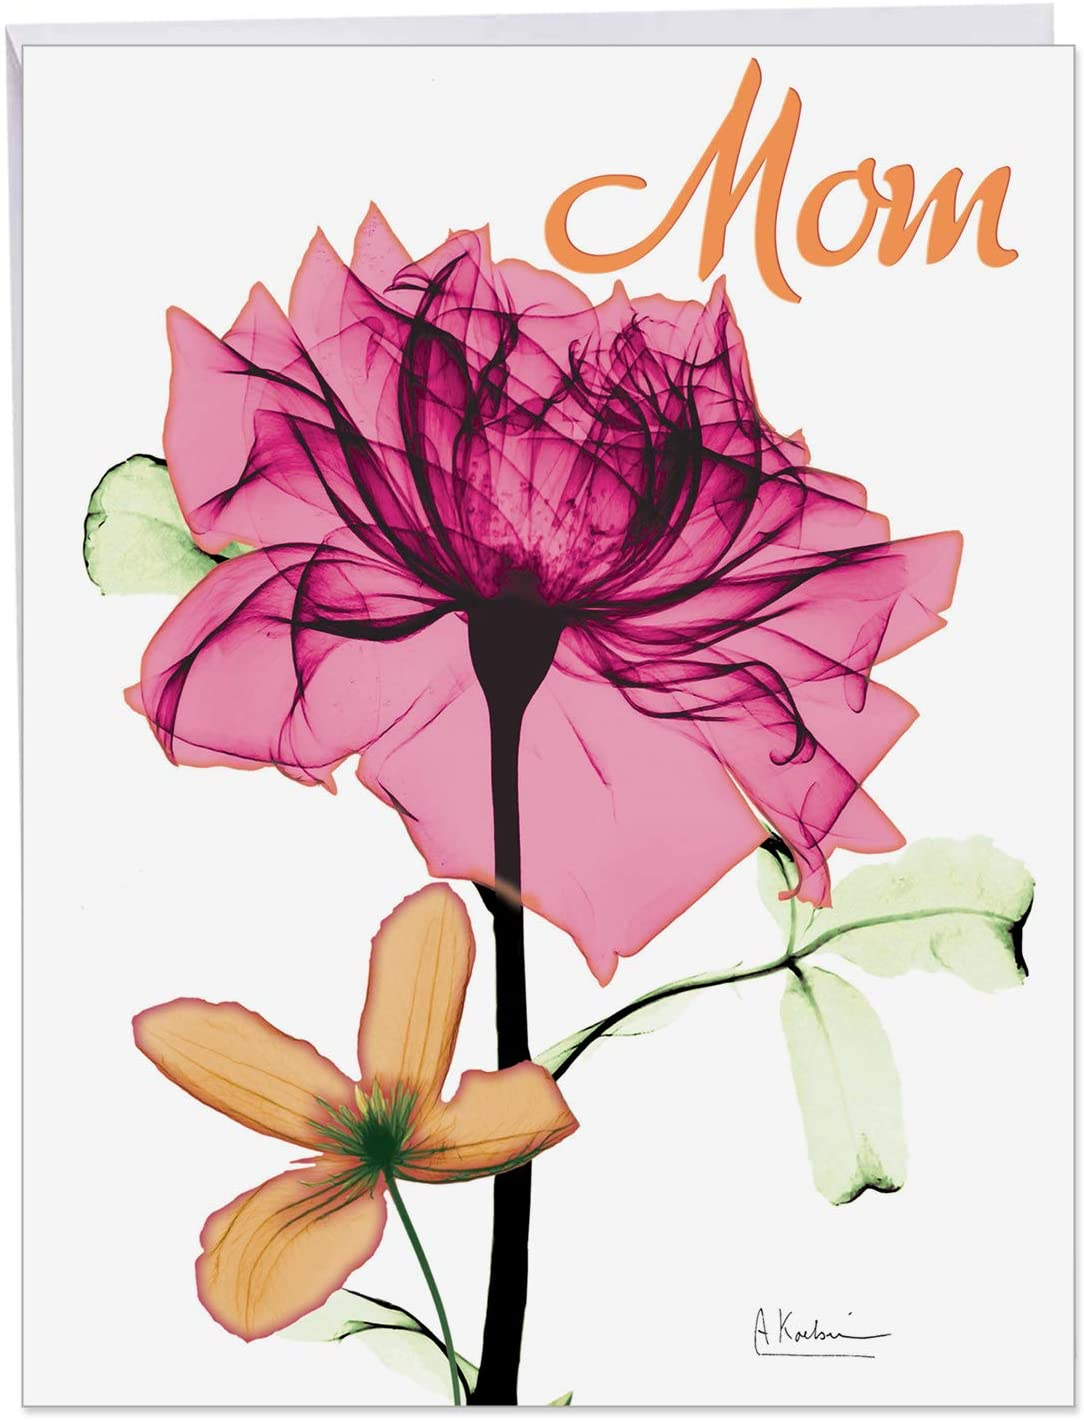 The Best Card Company - Jumbo Flower Mothers Day Card (8.5 x 11 Inch) - Womens Floral Greeting Card for Mom - Inspiring Floral Mix J6220BMDG